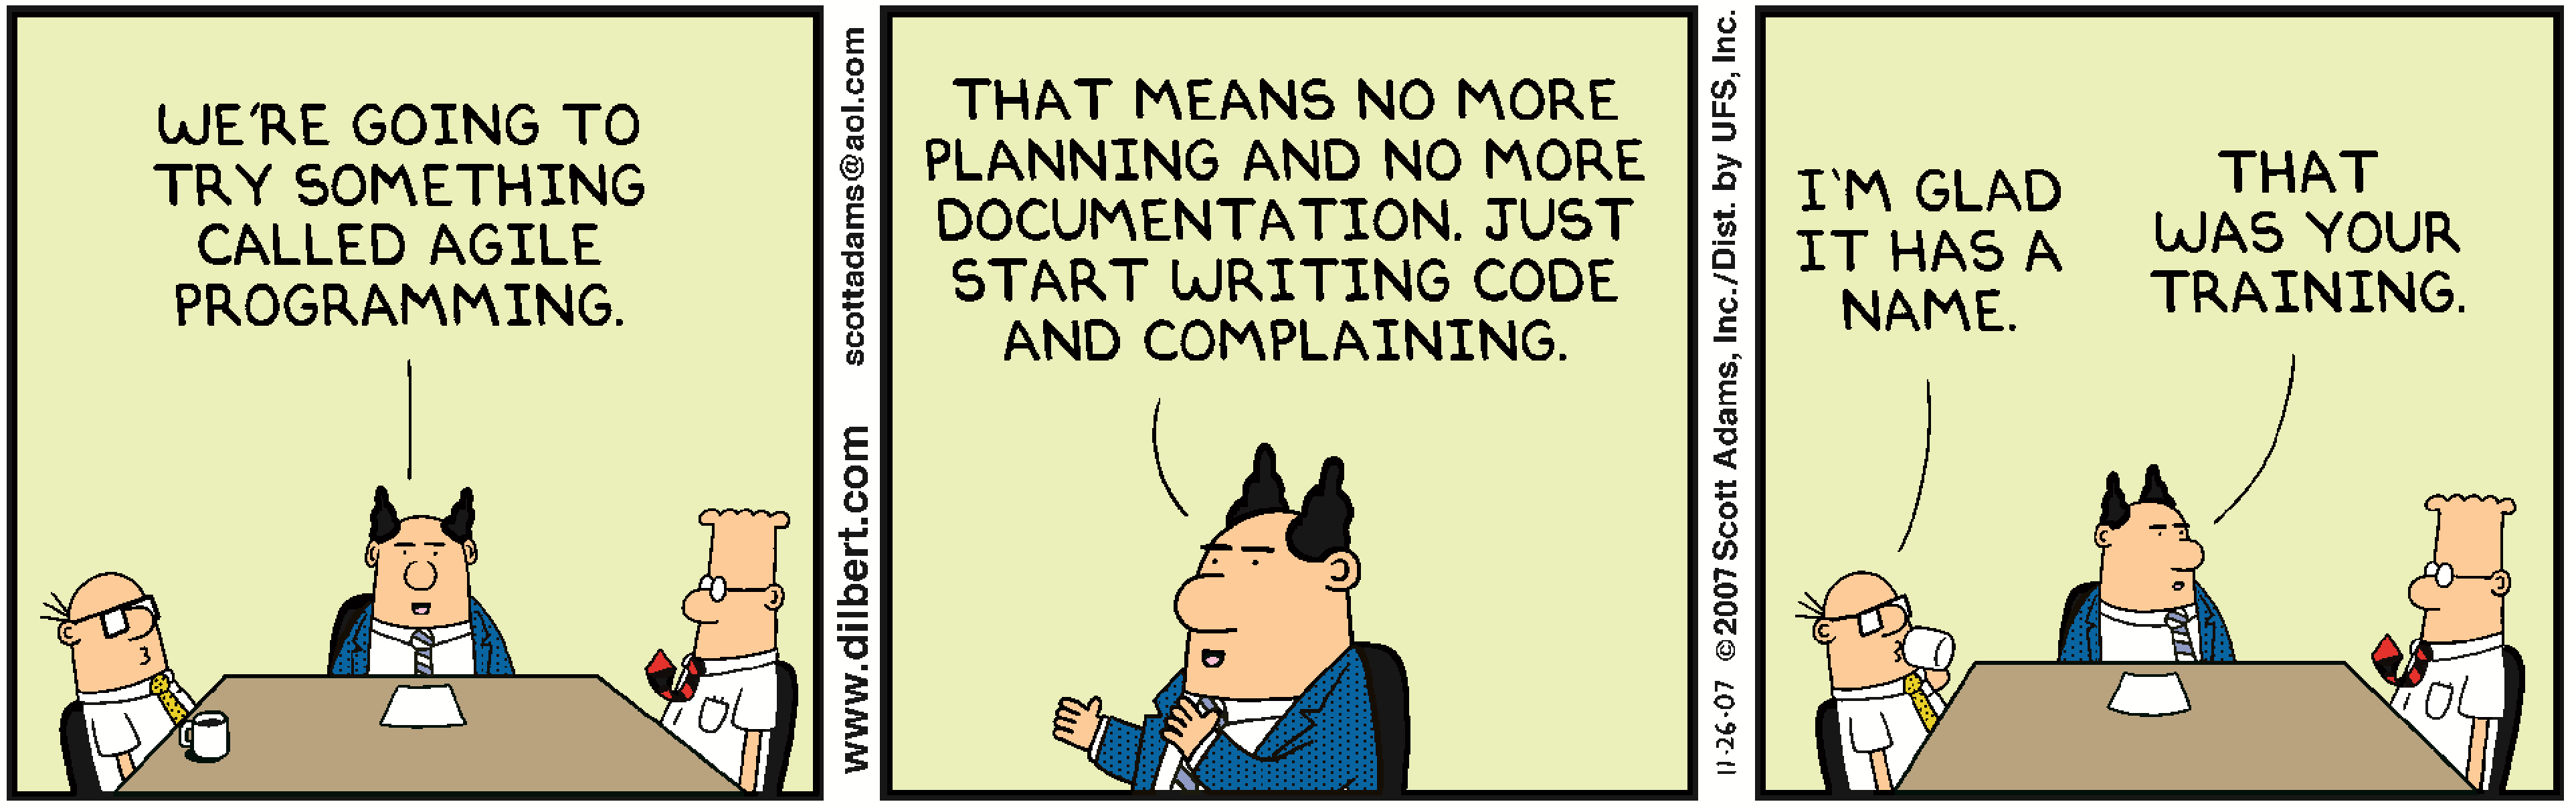 Dilbert-Agile-Project-Management